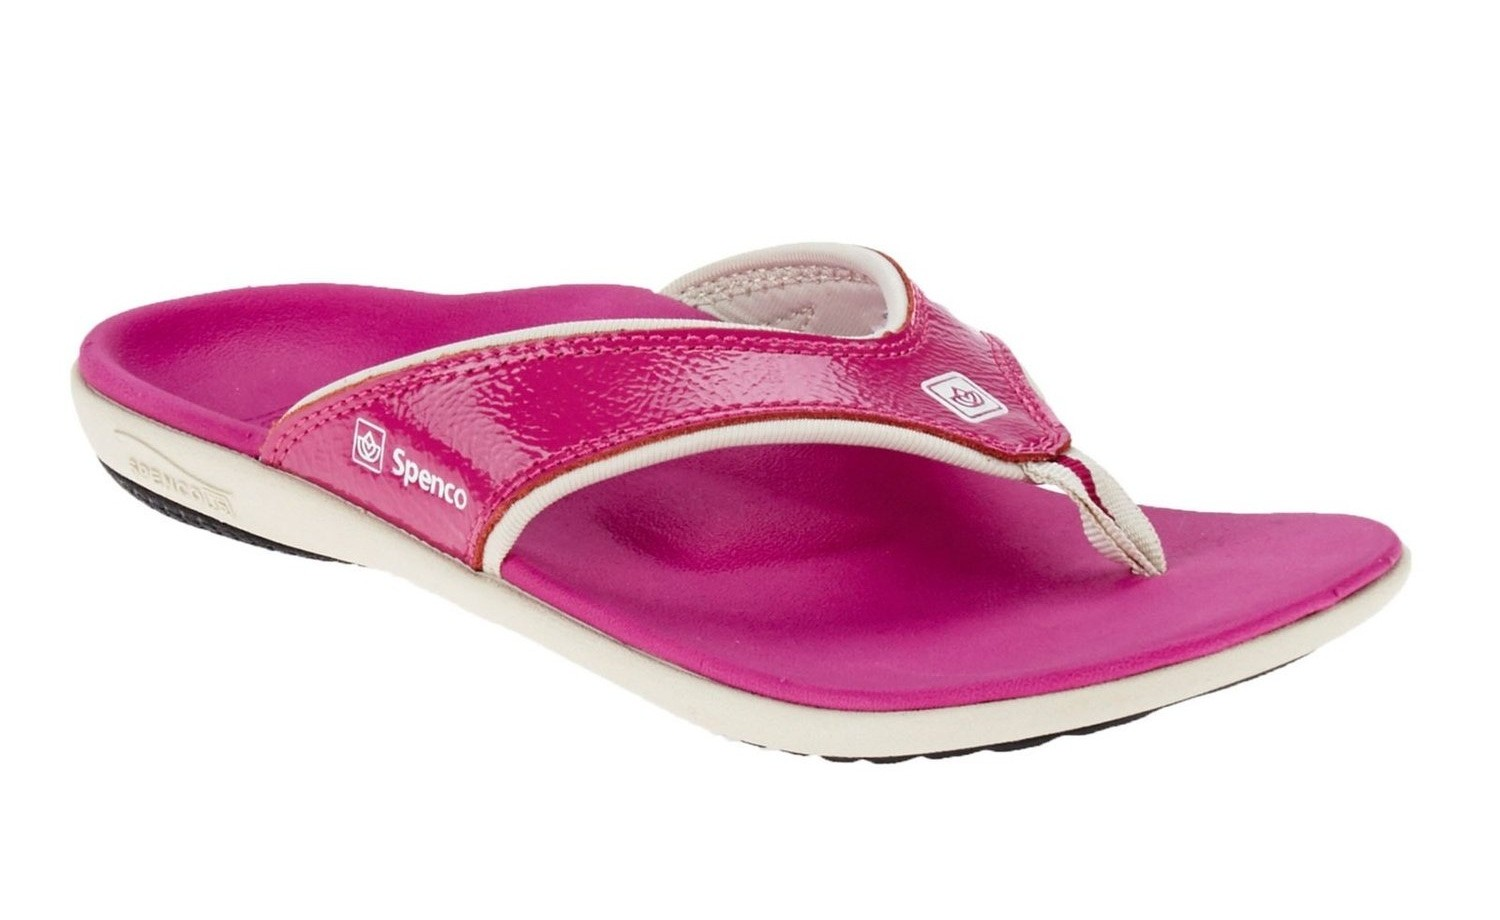 Spenco Women's Yumi Sandal Flip Flop for plantar fasciitis